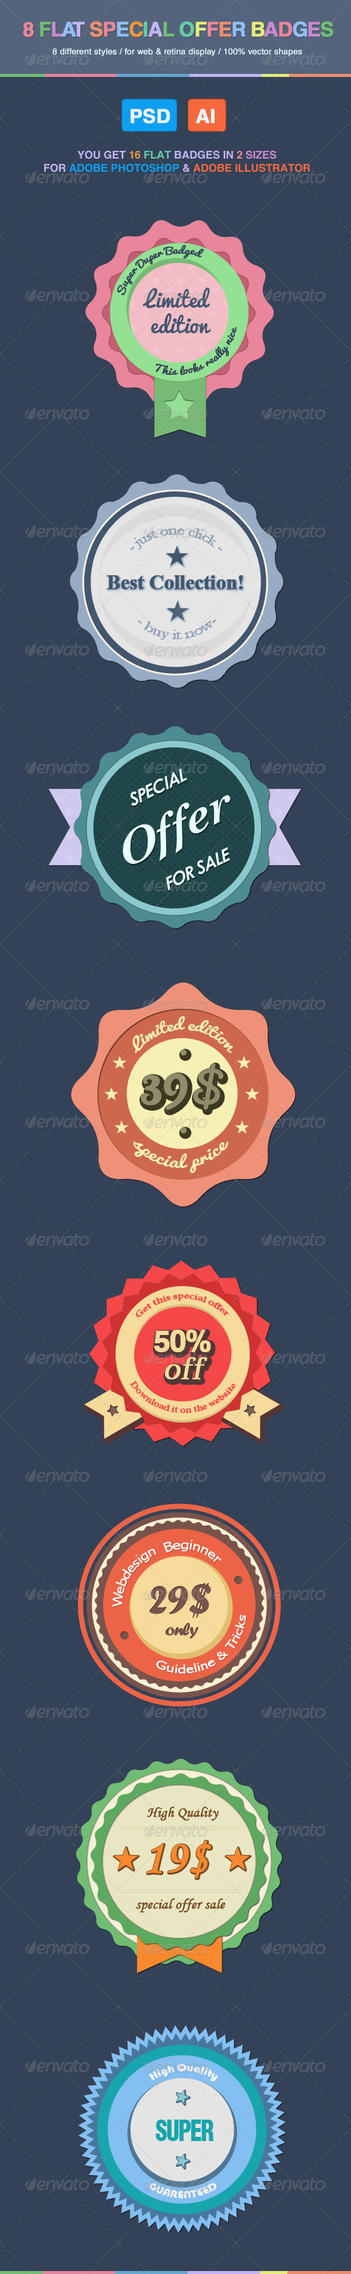 Flat Special Offer Badges by KL-Webmedia